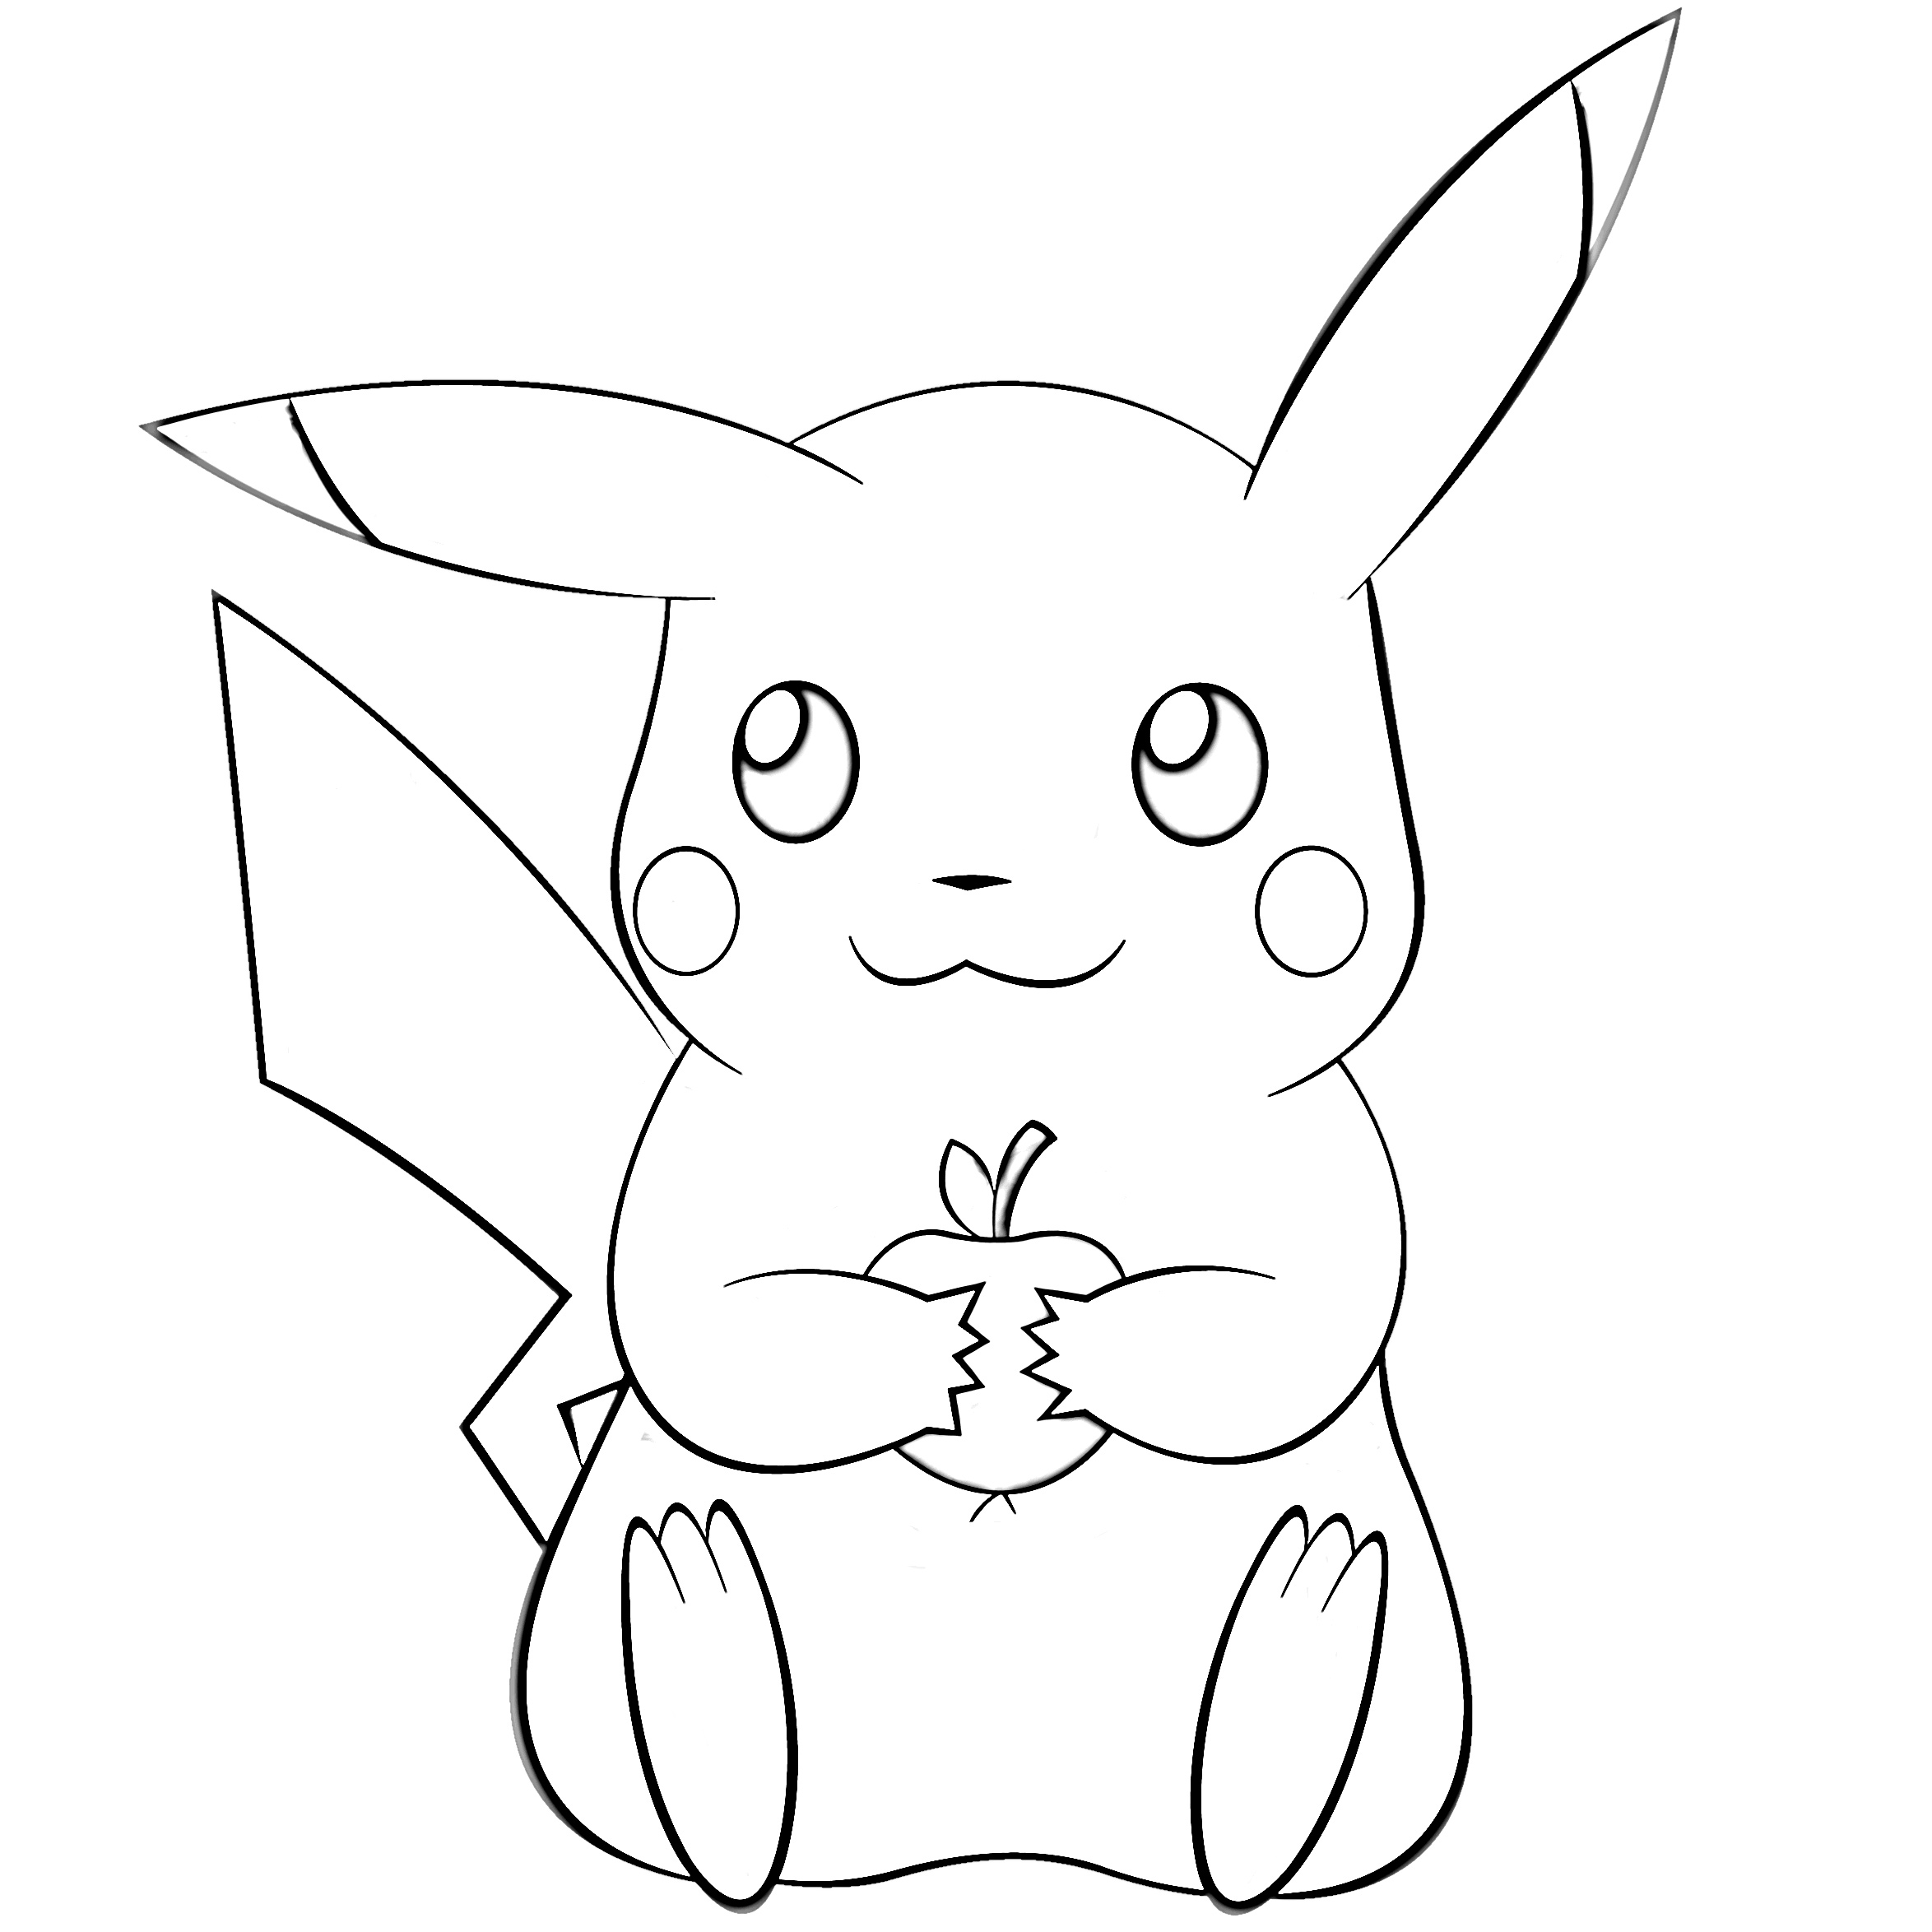 coloring pages of pikachu pikachu coloring pages minister coloring coloring pikachu pages of